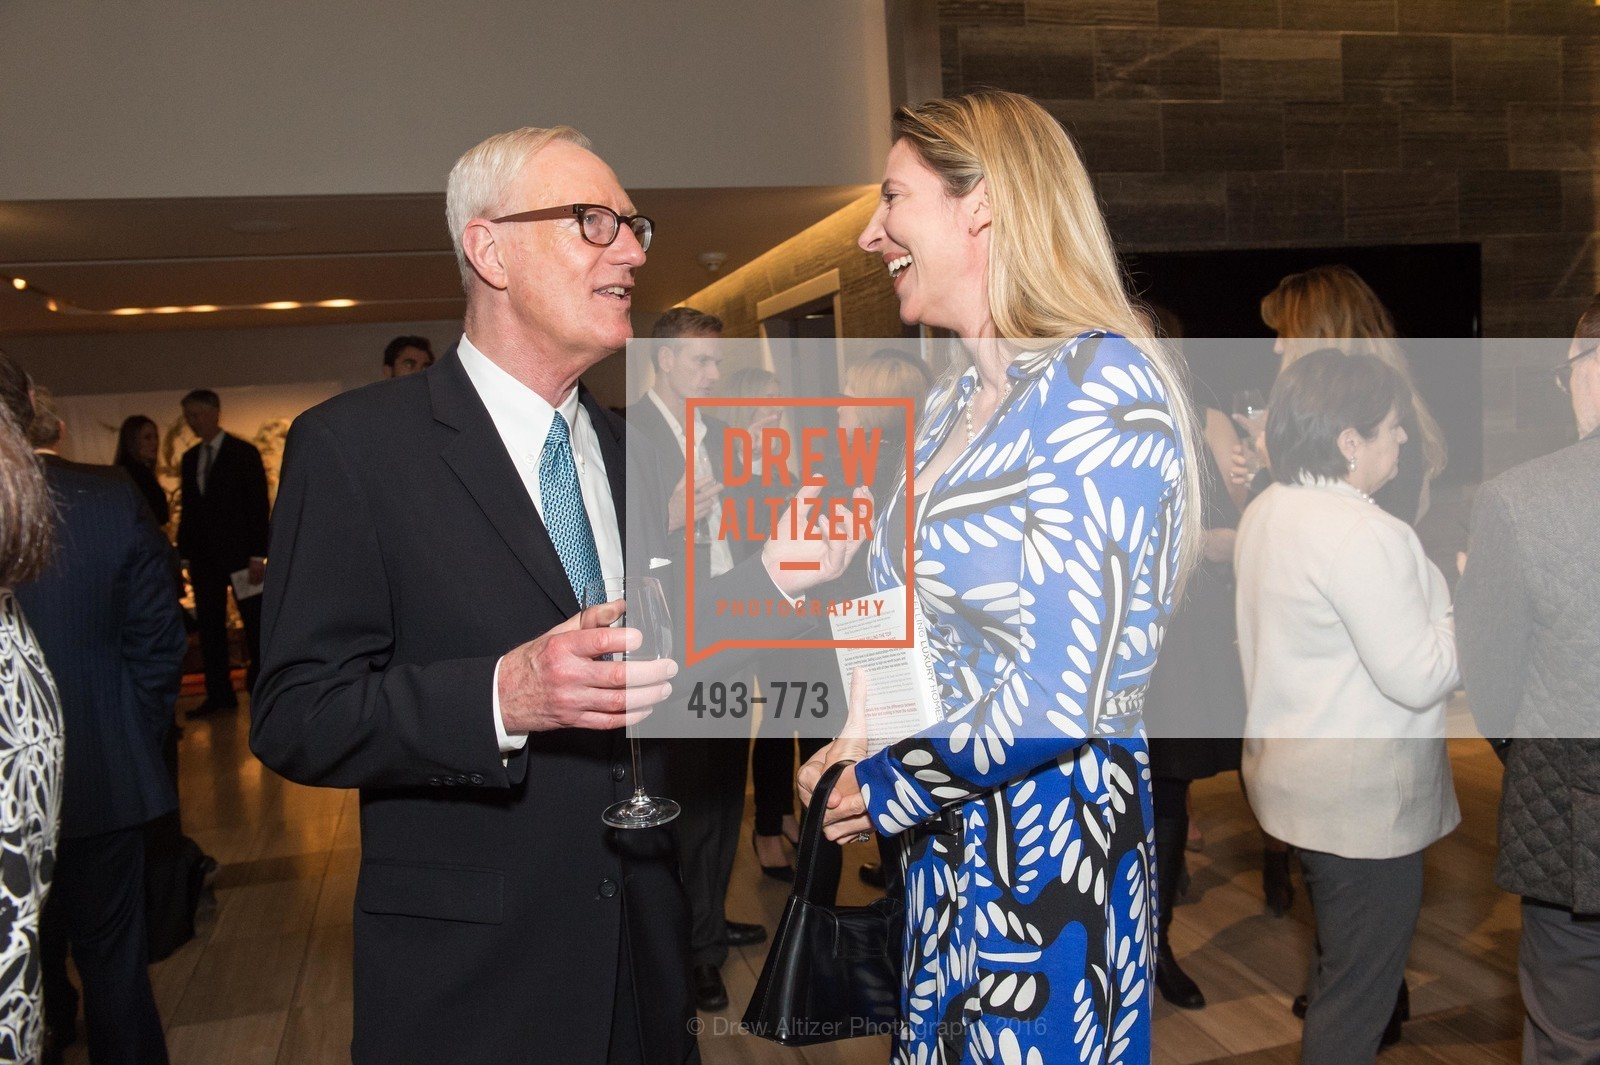 Allison Fortini Crawford, Sotheby's International Realty's Celebrates the New Year, The Battery, Penthouse. 717 Battery St, January 27th, 2016,Drew Altizer, Drew Altizer Photography, full-service agency, private events, San Francisco photographer, photographer california